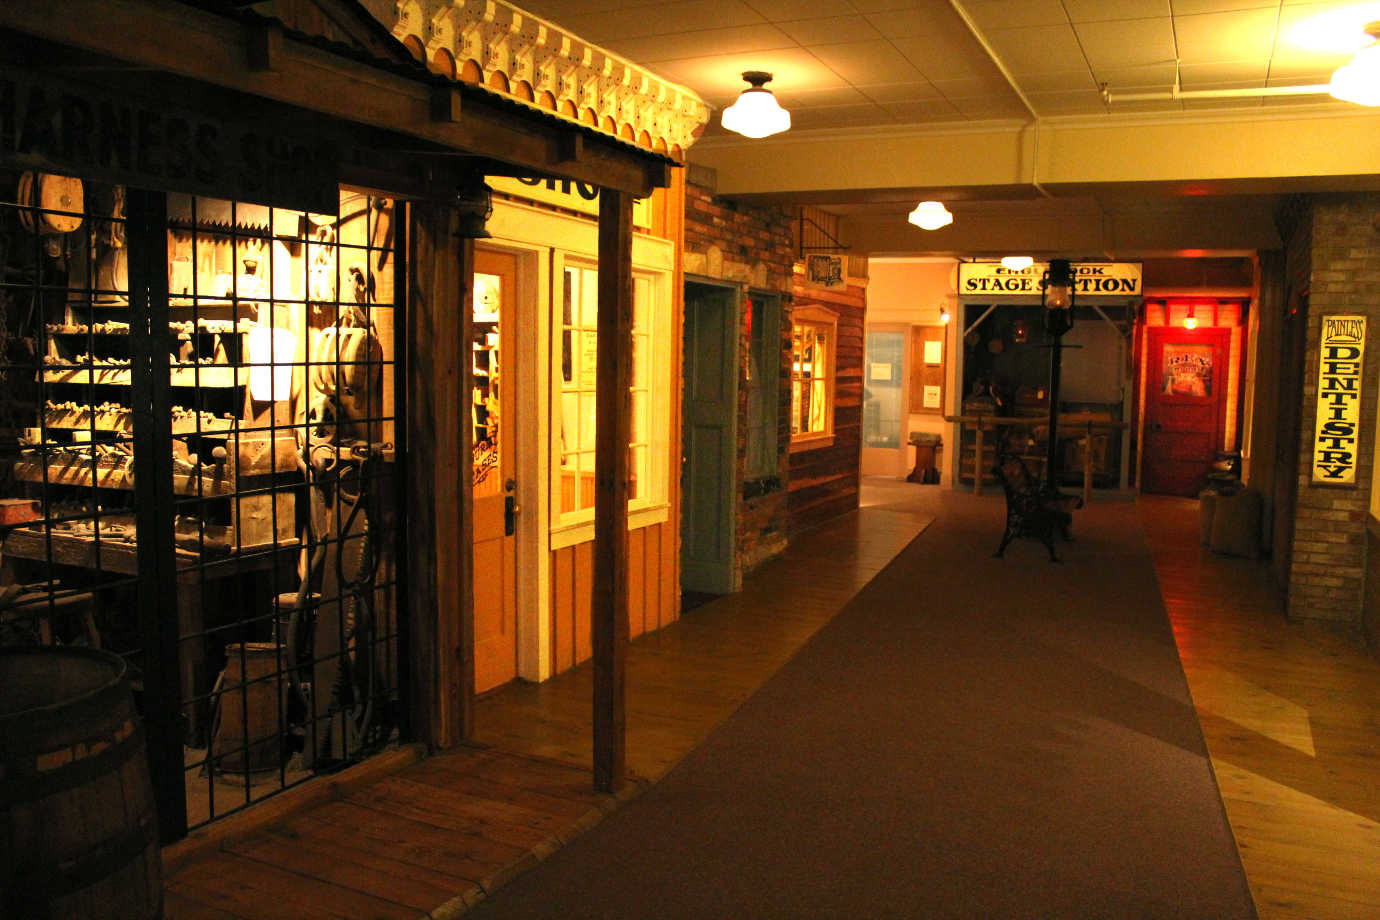 The larger space will allow the Museum of Idaho to expand its permanent exhibition from the current *Eagle Rock, U.S.A.*, pictured here, to a more comprehensive exhibition interpreting the region from the Ice Age to the present day. Image courtesy of the Museum of Idaho.